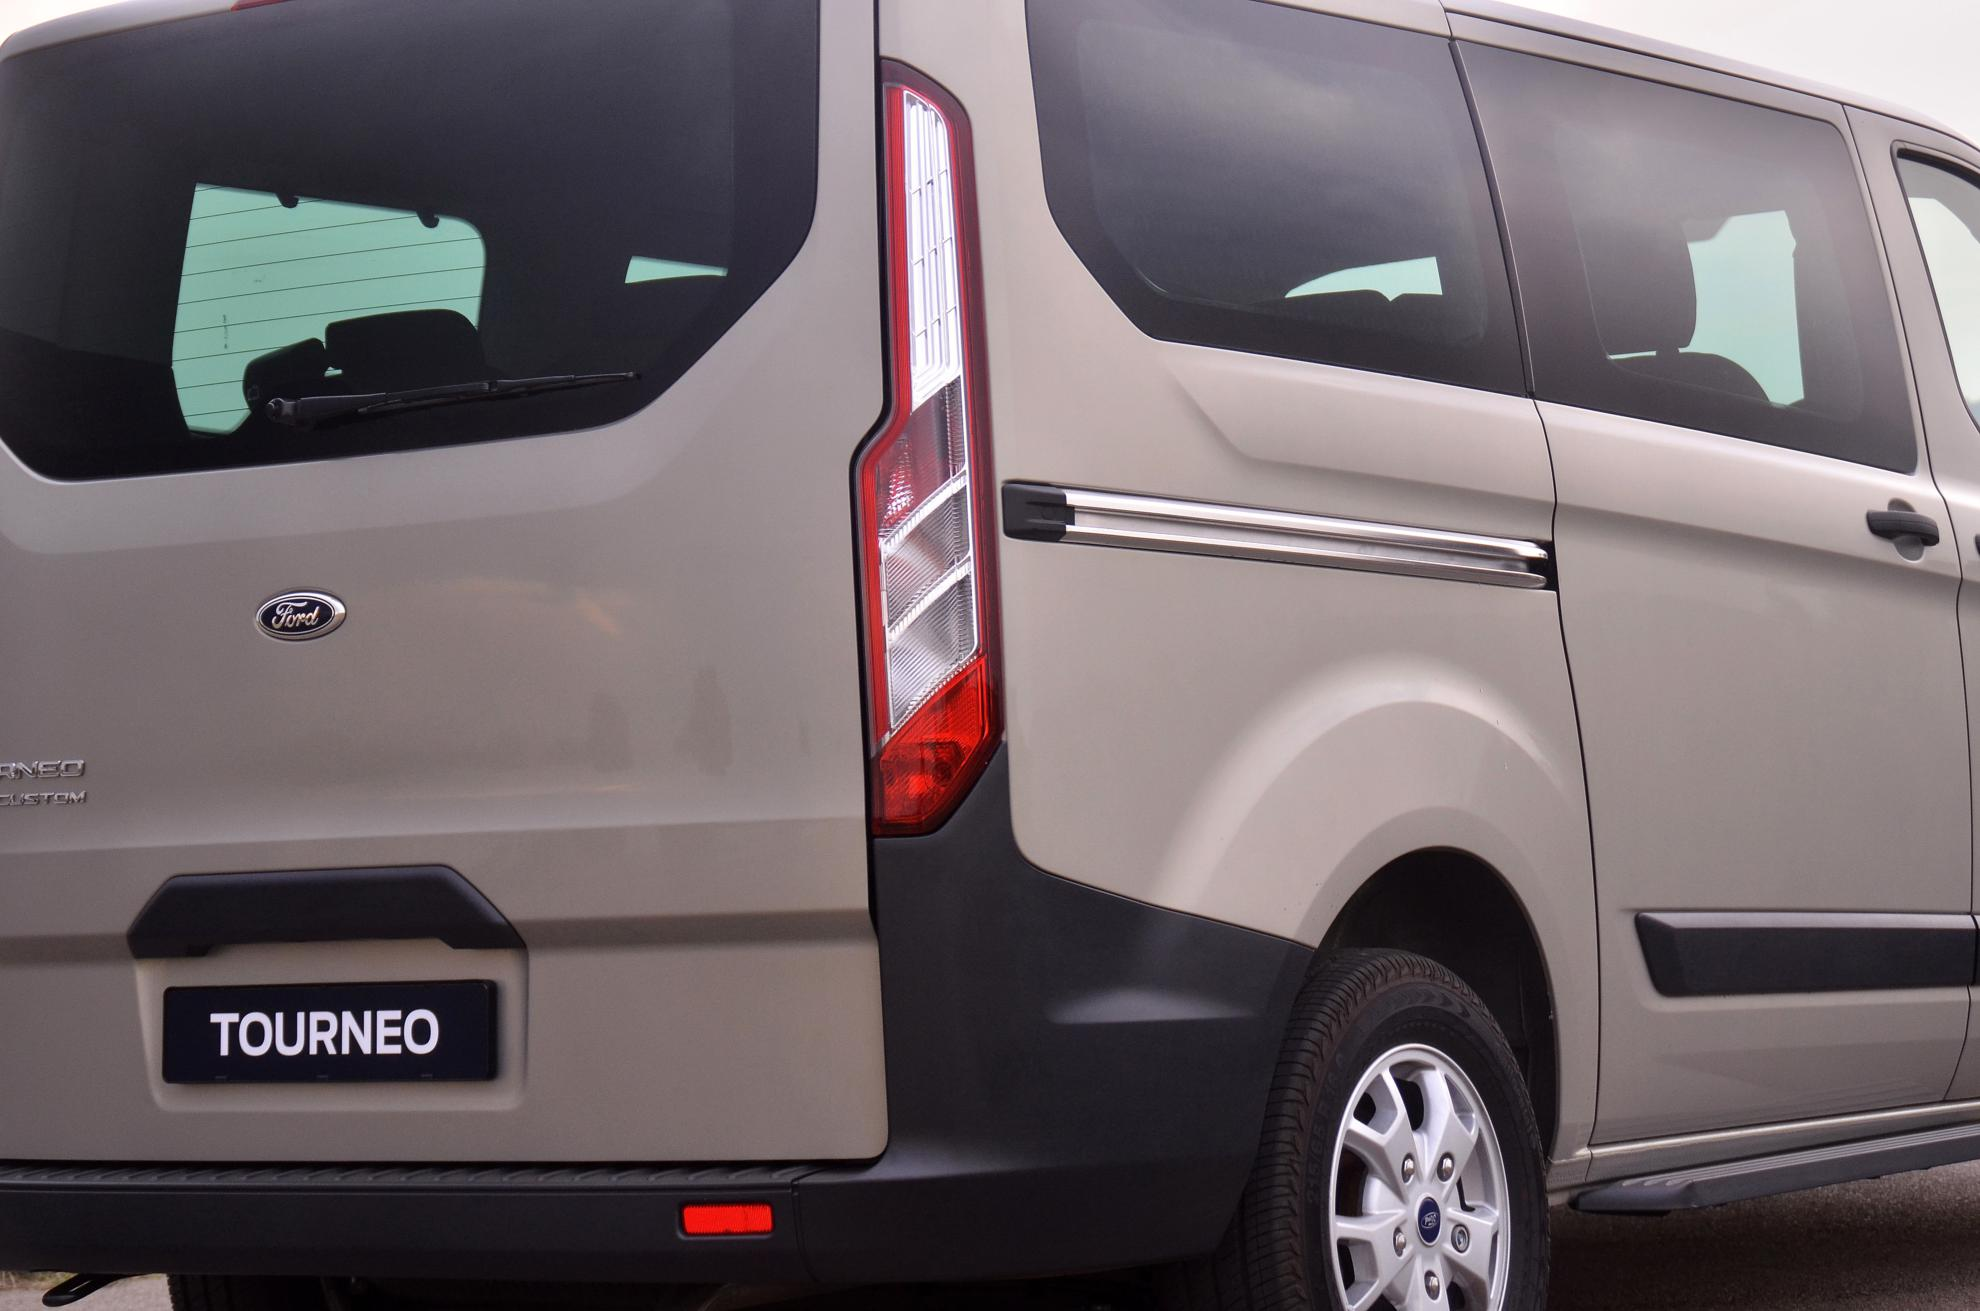 Ford Tourneo Rear Lights